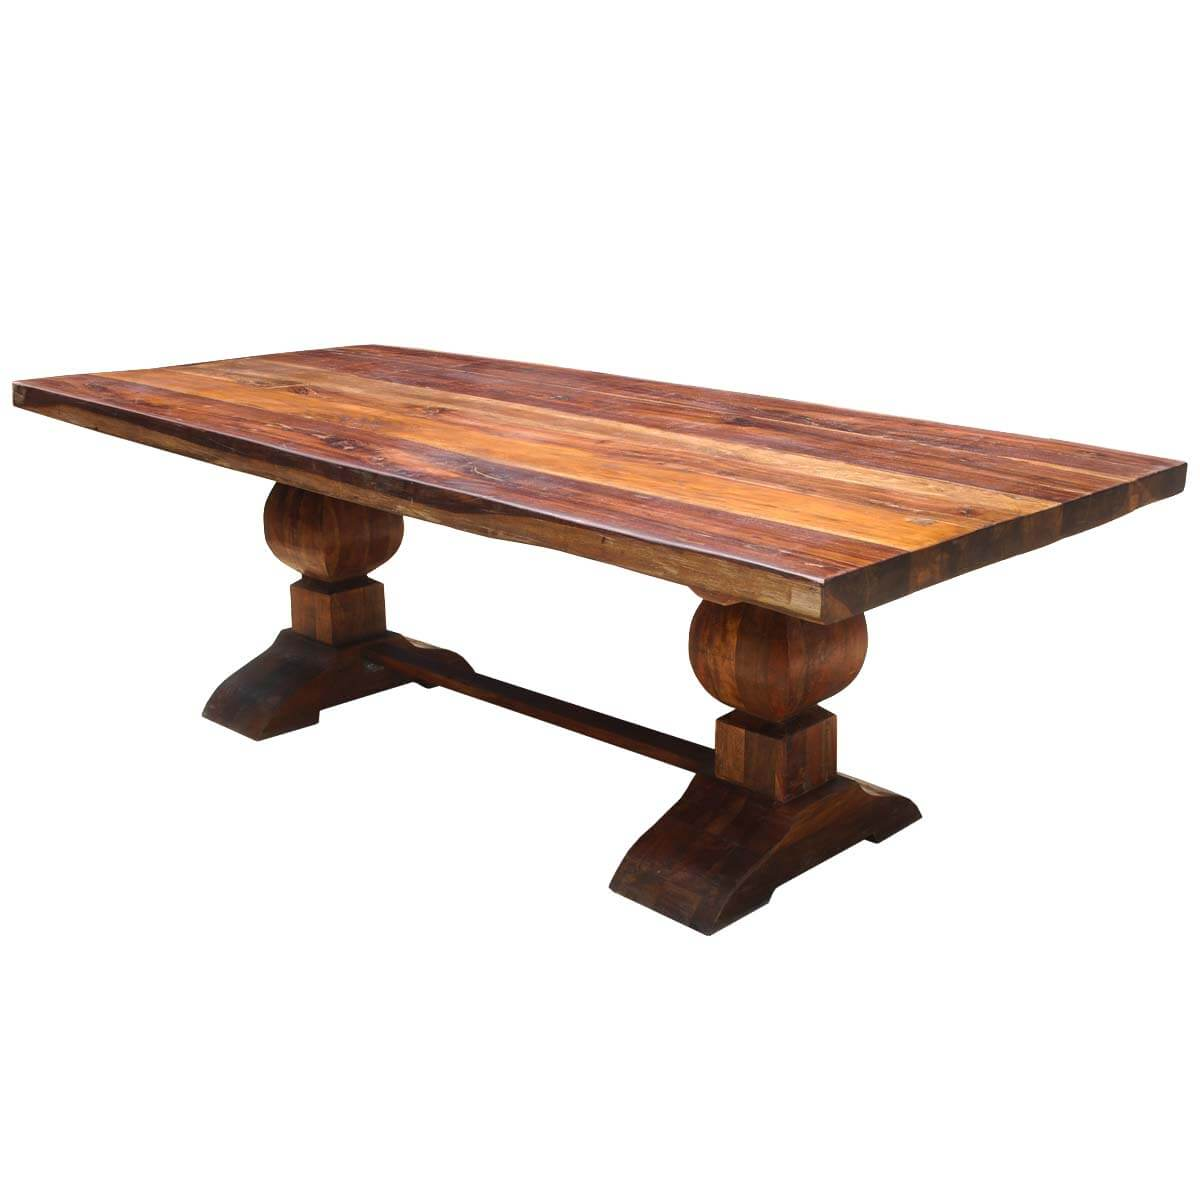 Large rustic reclaimed wood double trestle pedestal dining for Large dining table